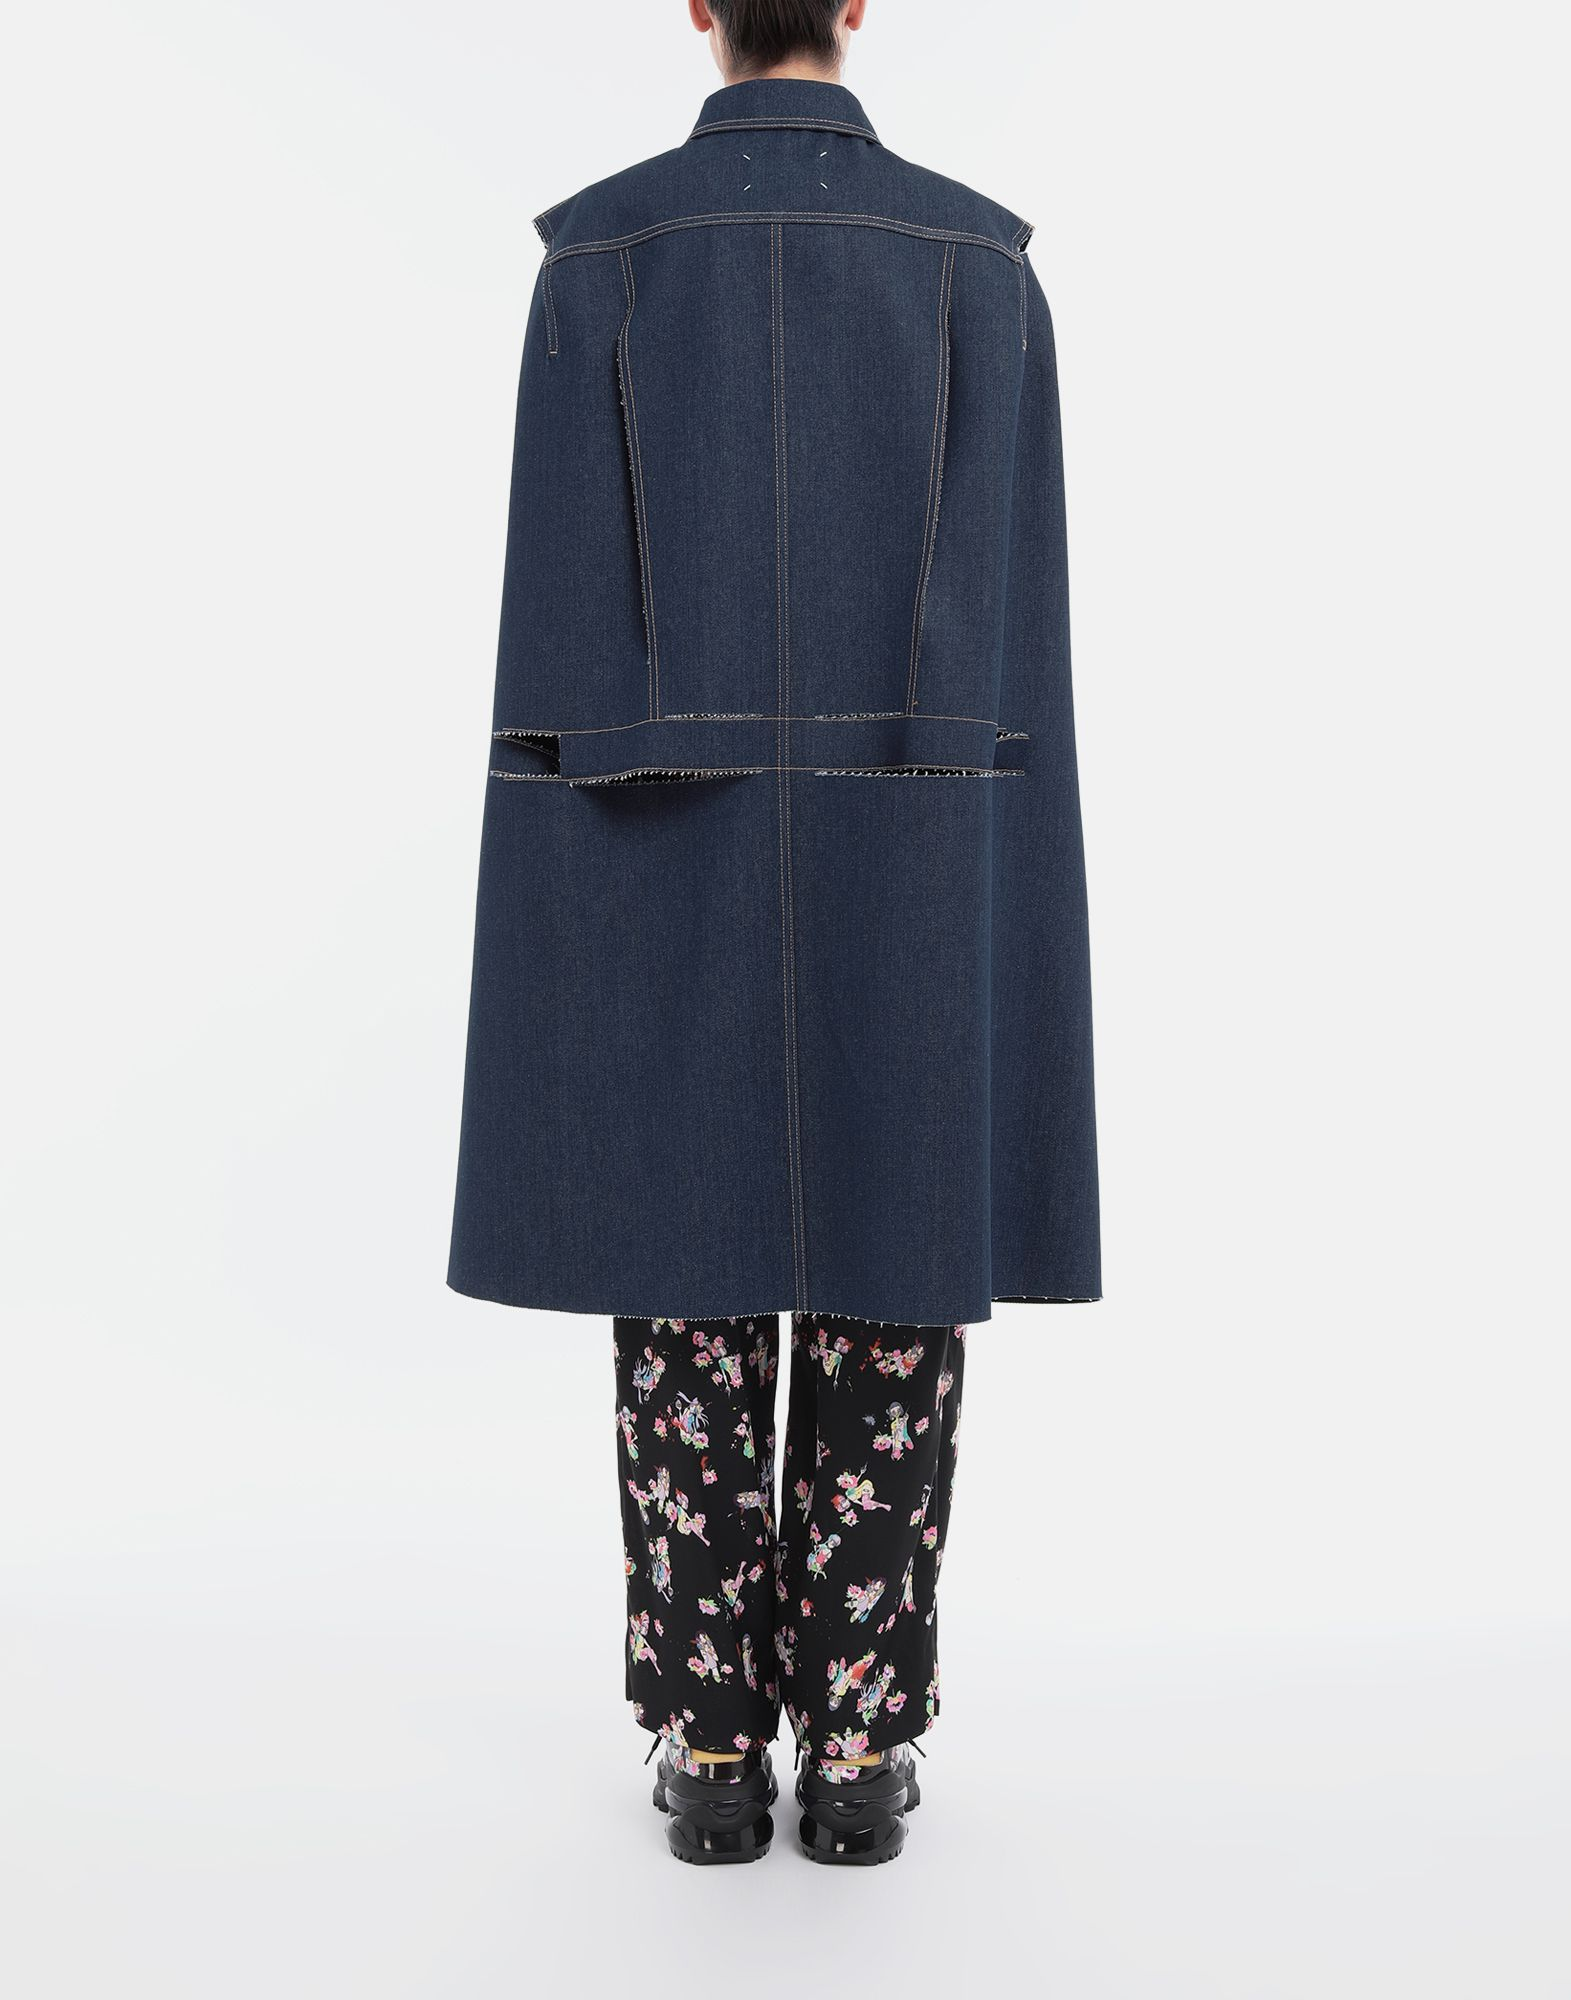 MAISON MARGIELA Décortiqué denim cape coat Coat Woman e